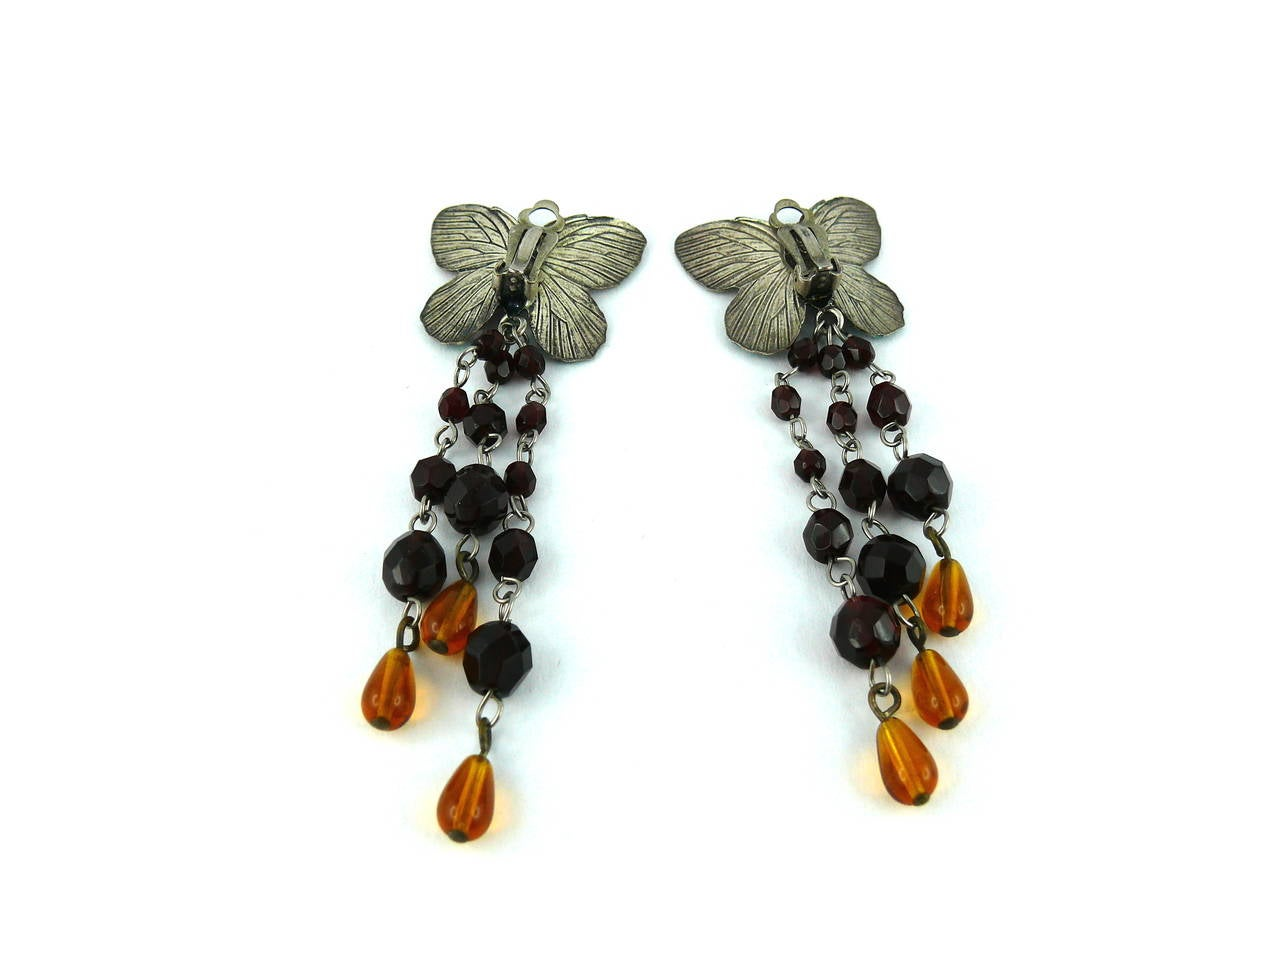 Jean Paul Gaultier Vintage Enamel Butterfly Dangling Earrings For Sale 2